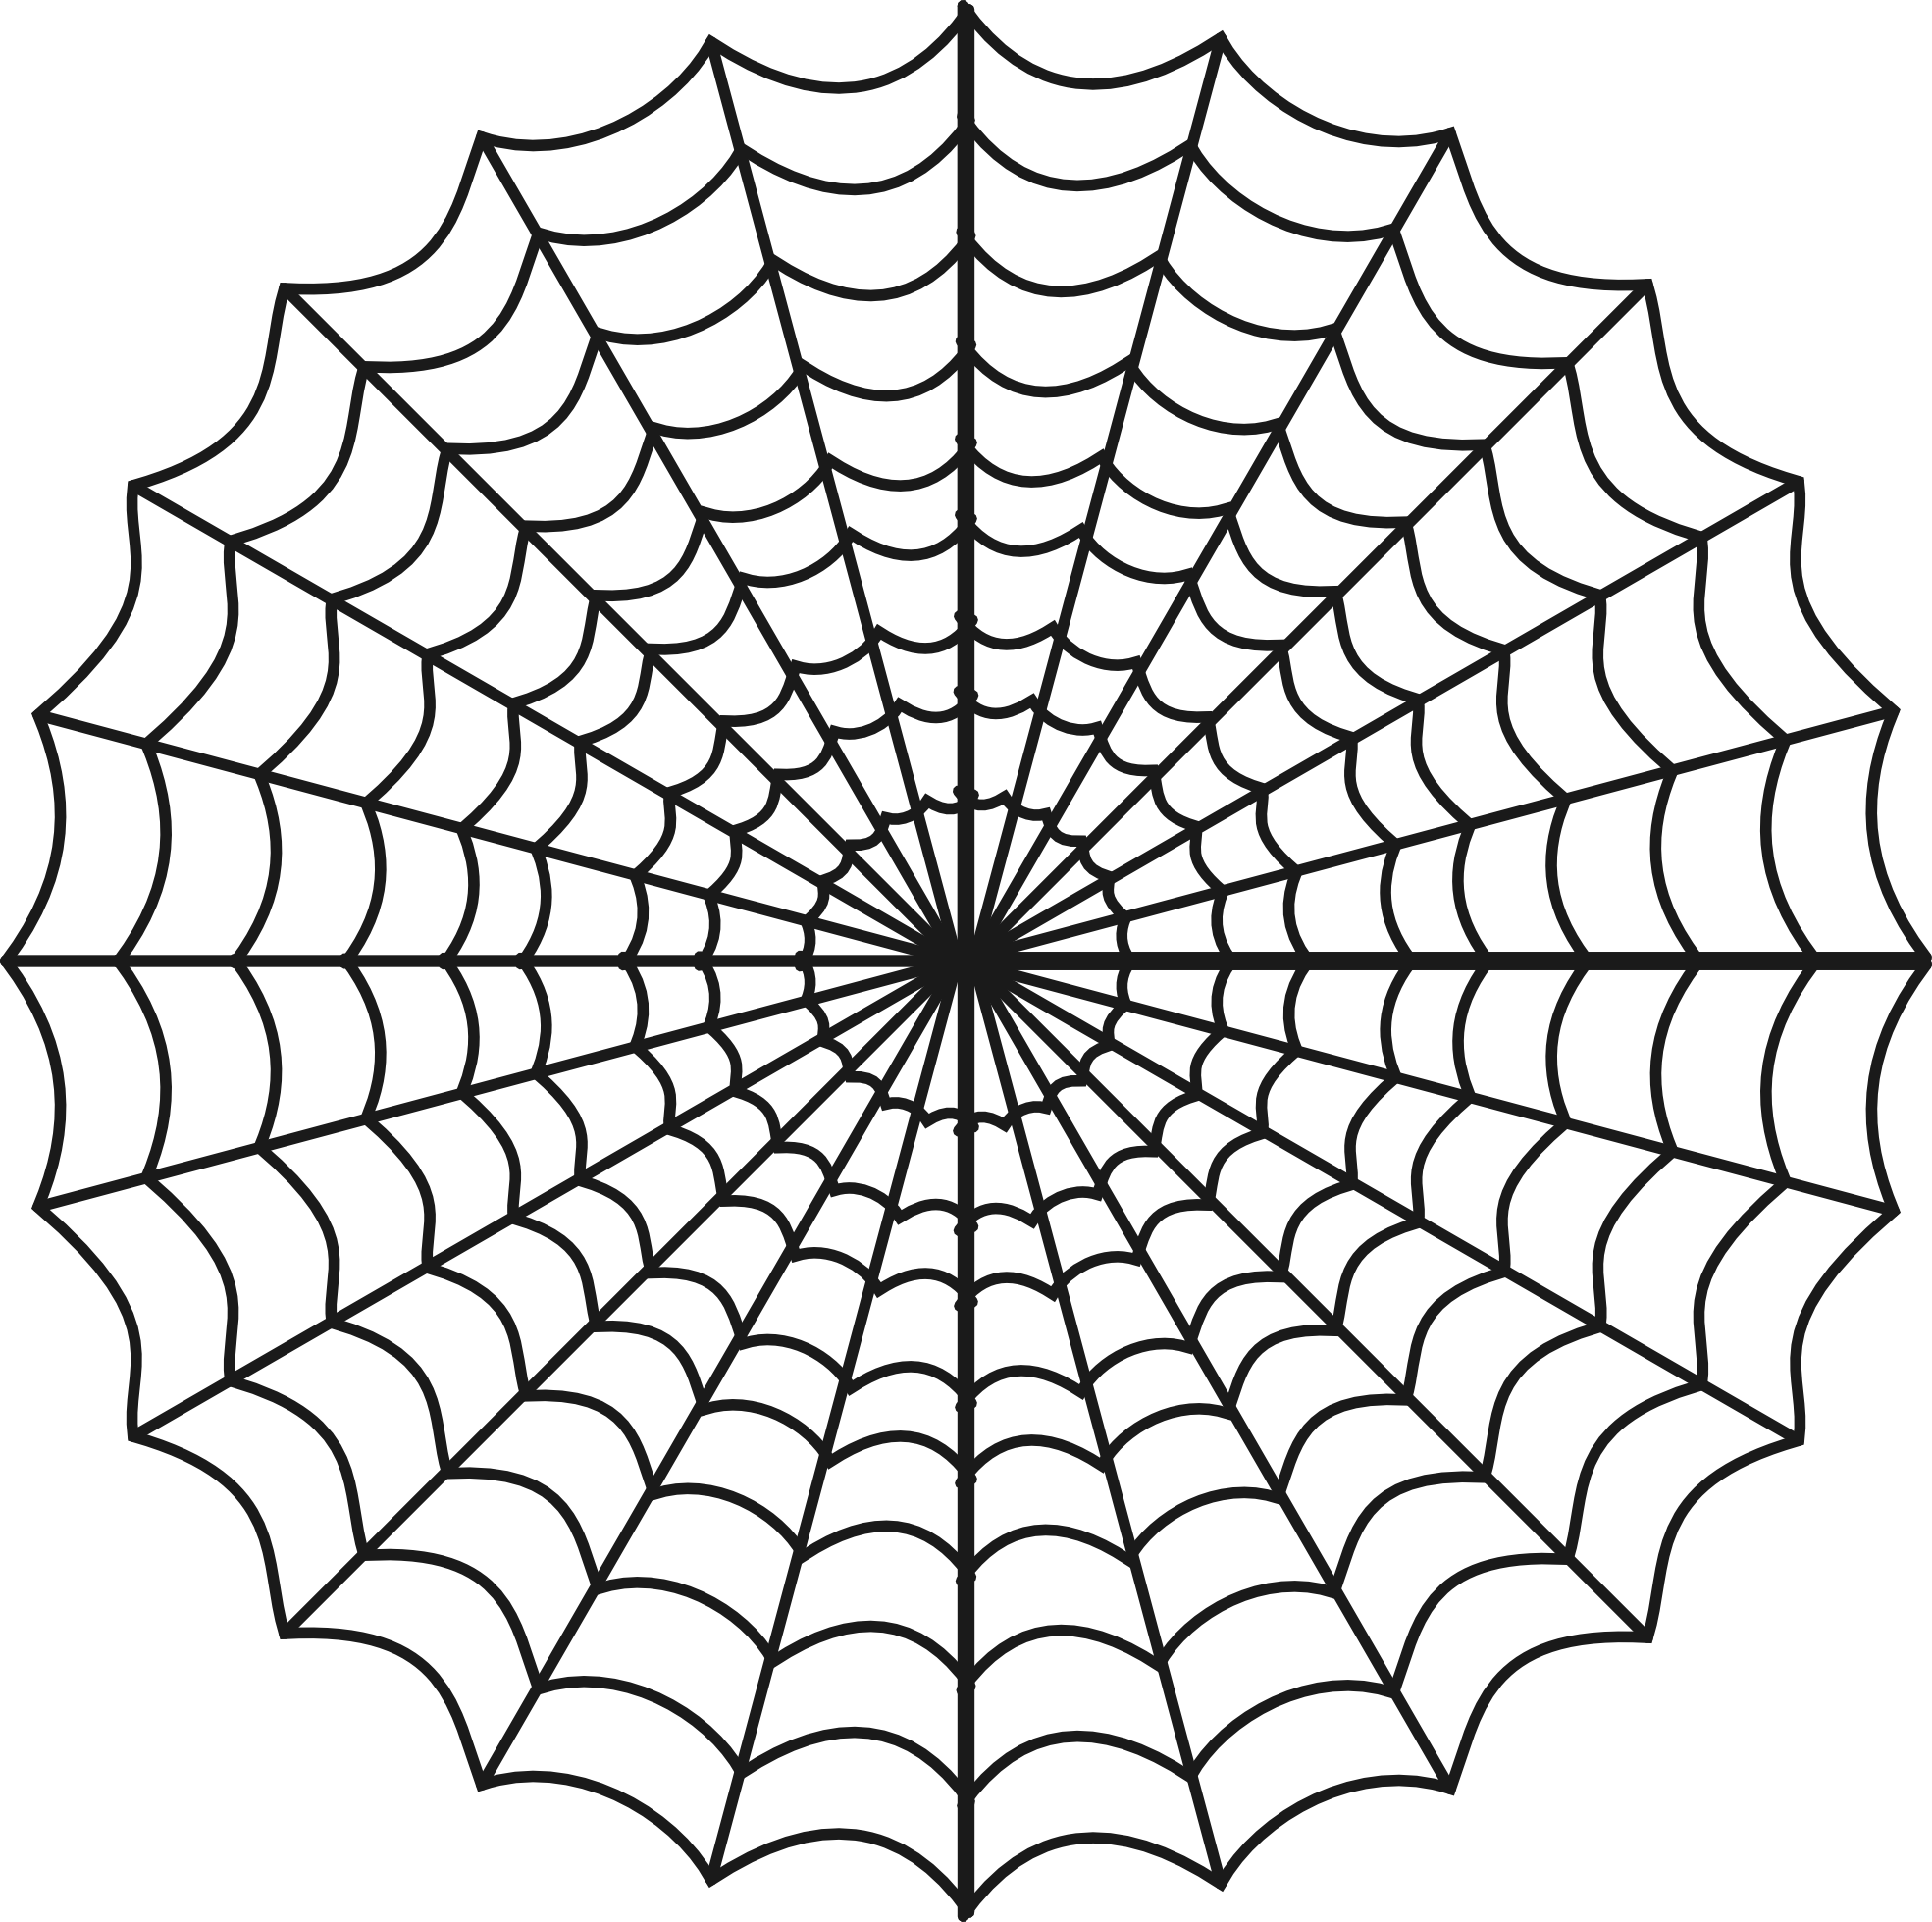 Spider webs png. Clipart black and white